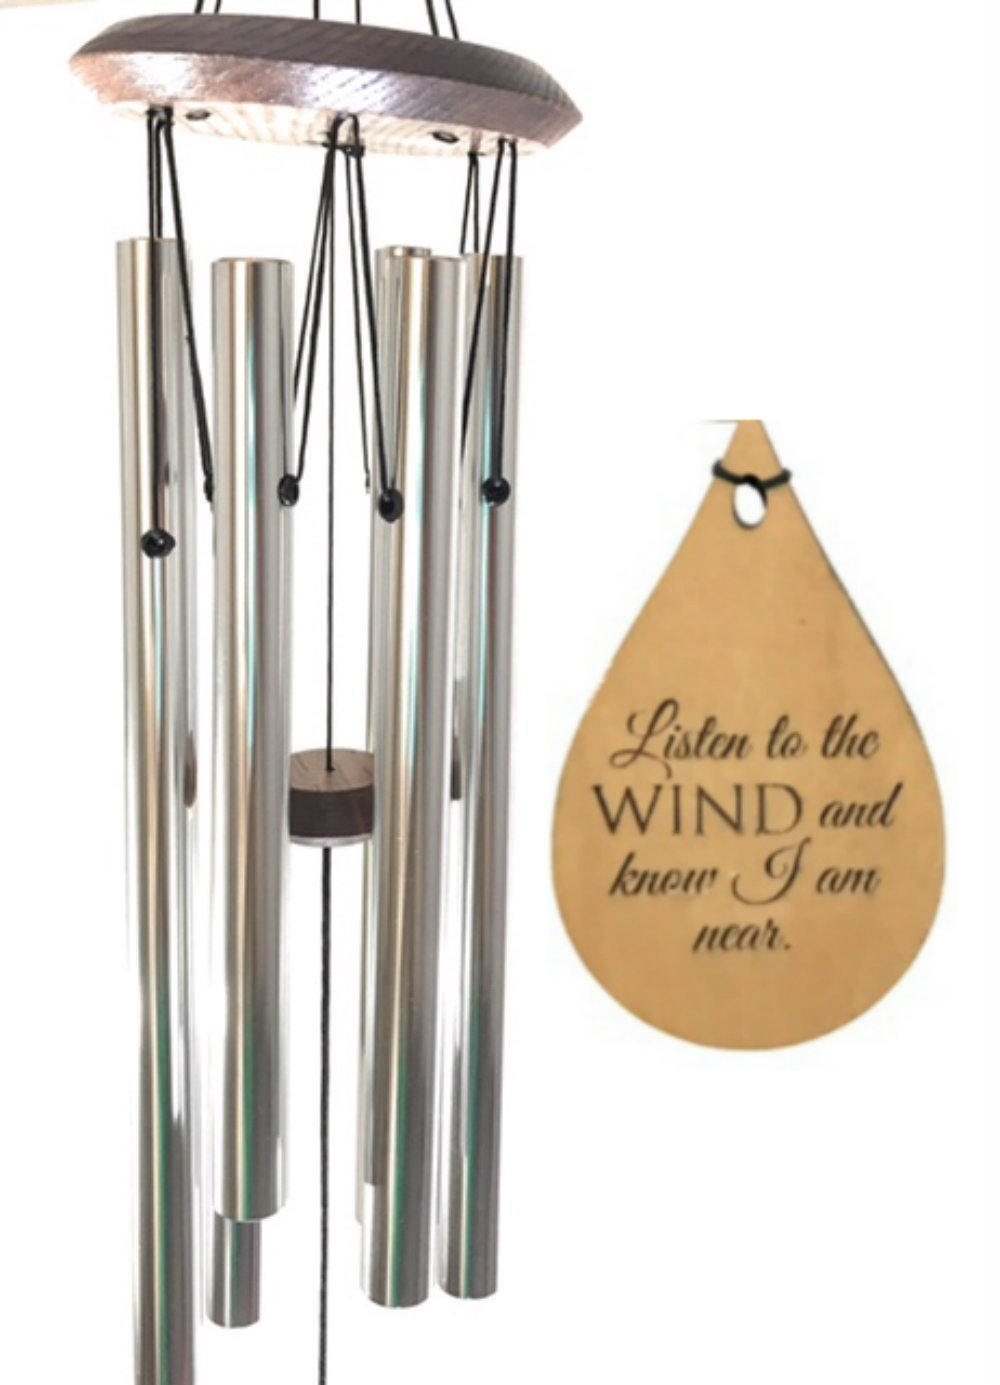 Comfort Memorial TOP Wind Chime Teardrop PRIME Rush Shipping for Funeral Loss in Memory of Loved One Silver Wind Chime for Memorial Garden Remembering a Child stillborn